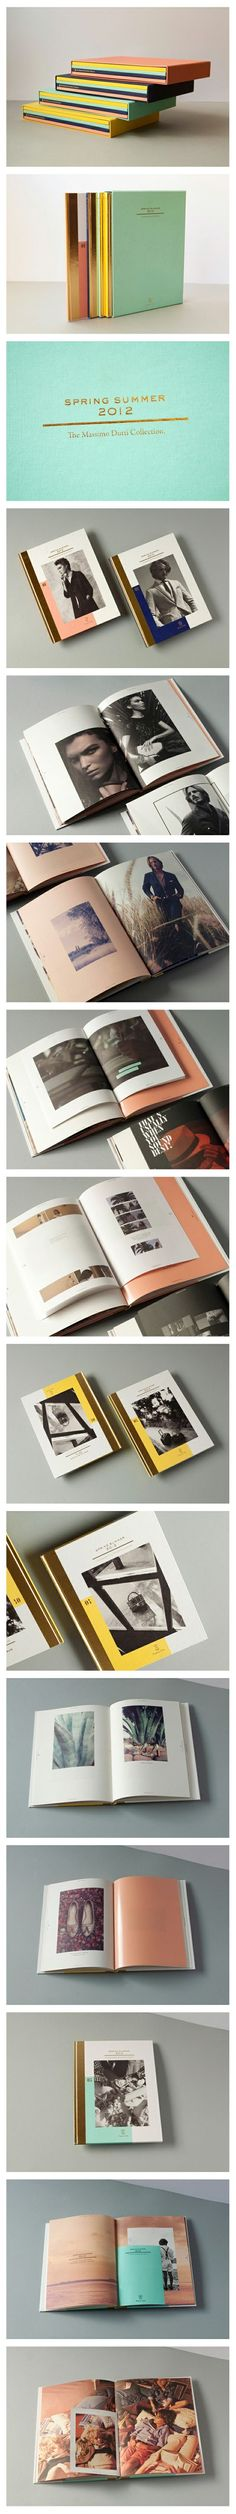 Book design - Layout - Print - Graphic design - Editorial